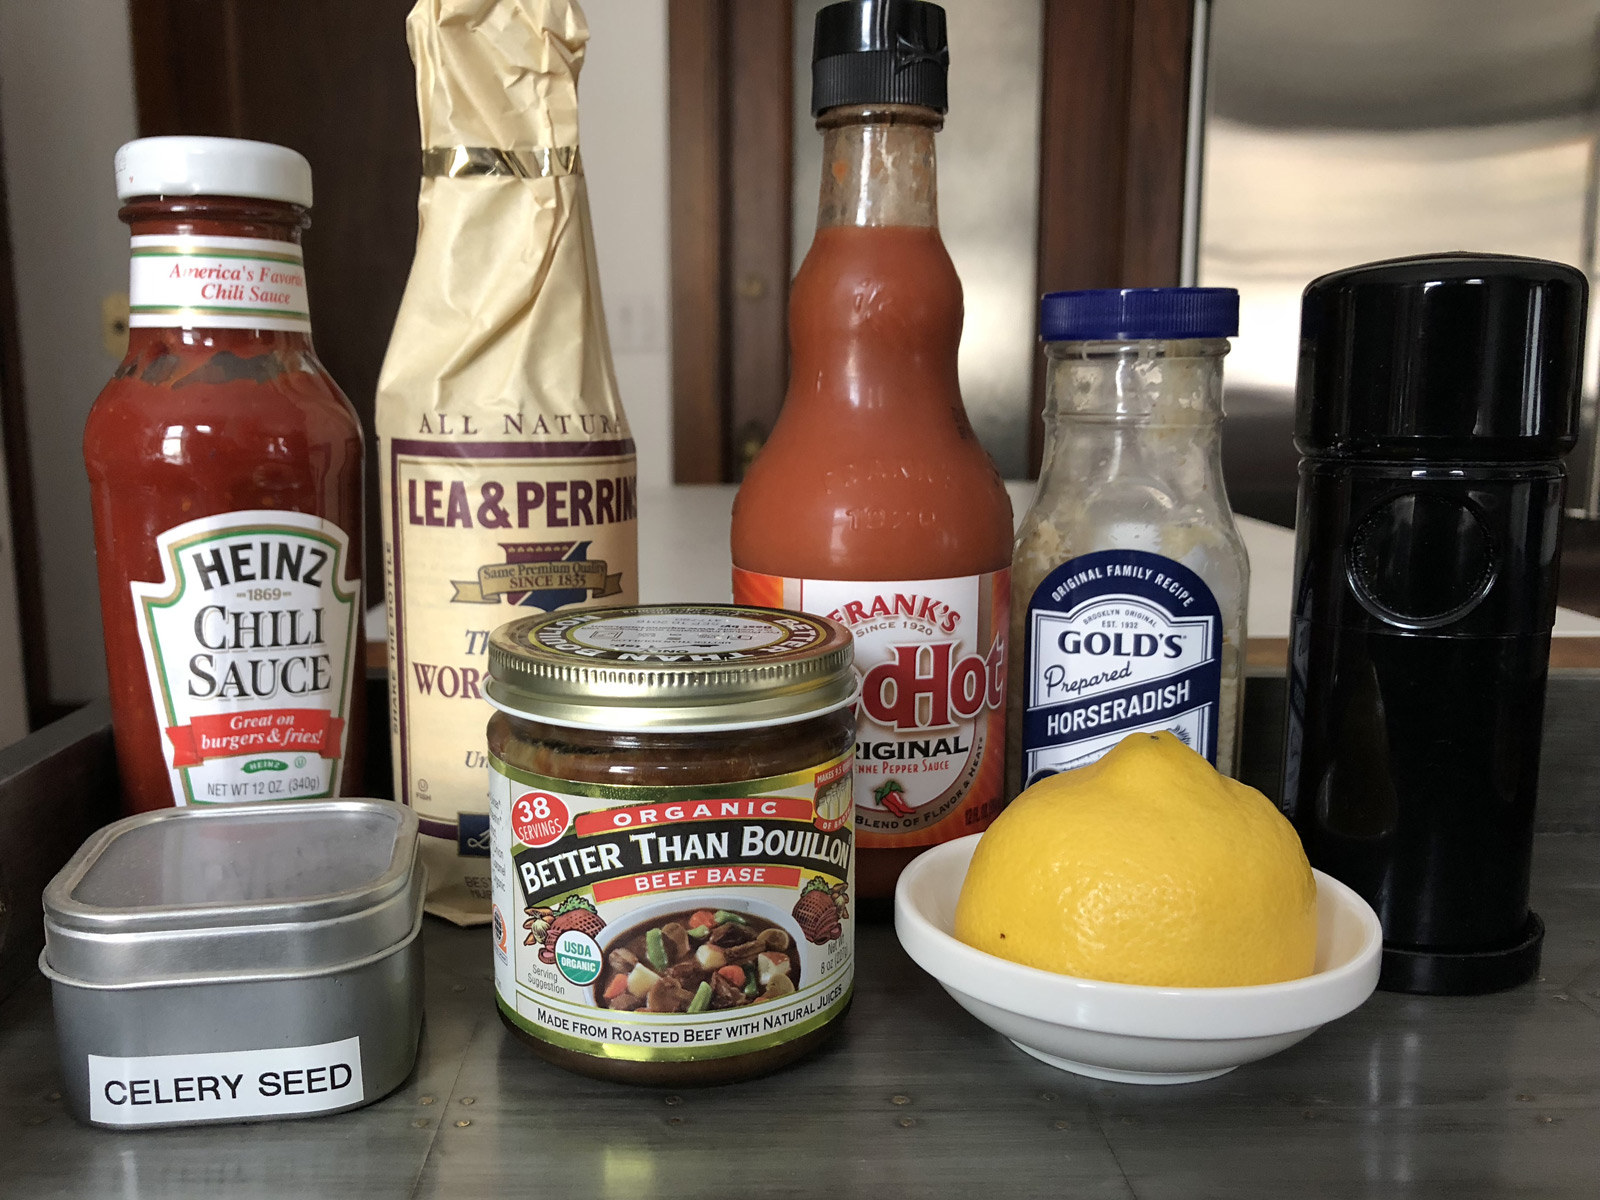 bloody-mary-ketchup-ingredients.jpg